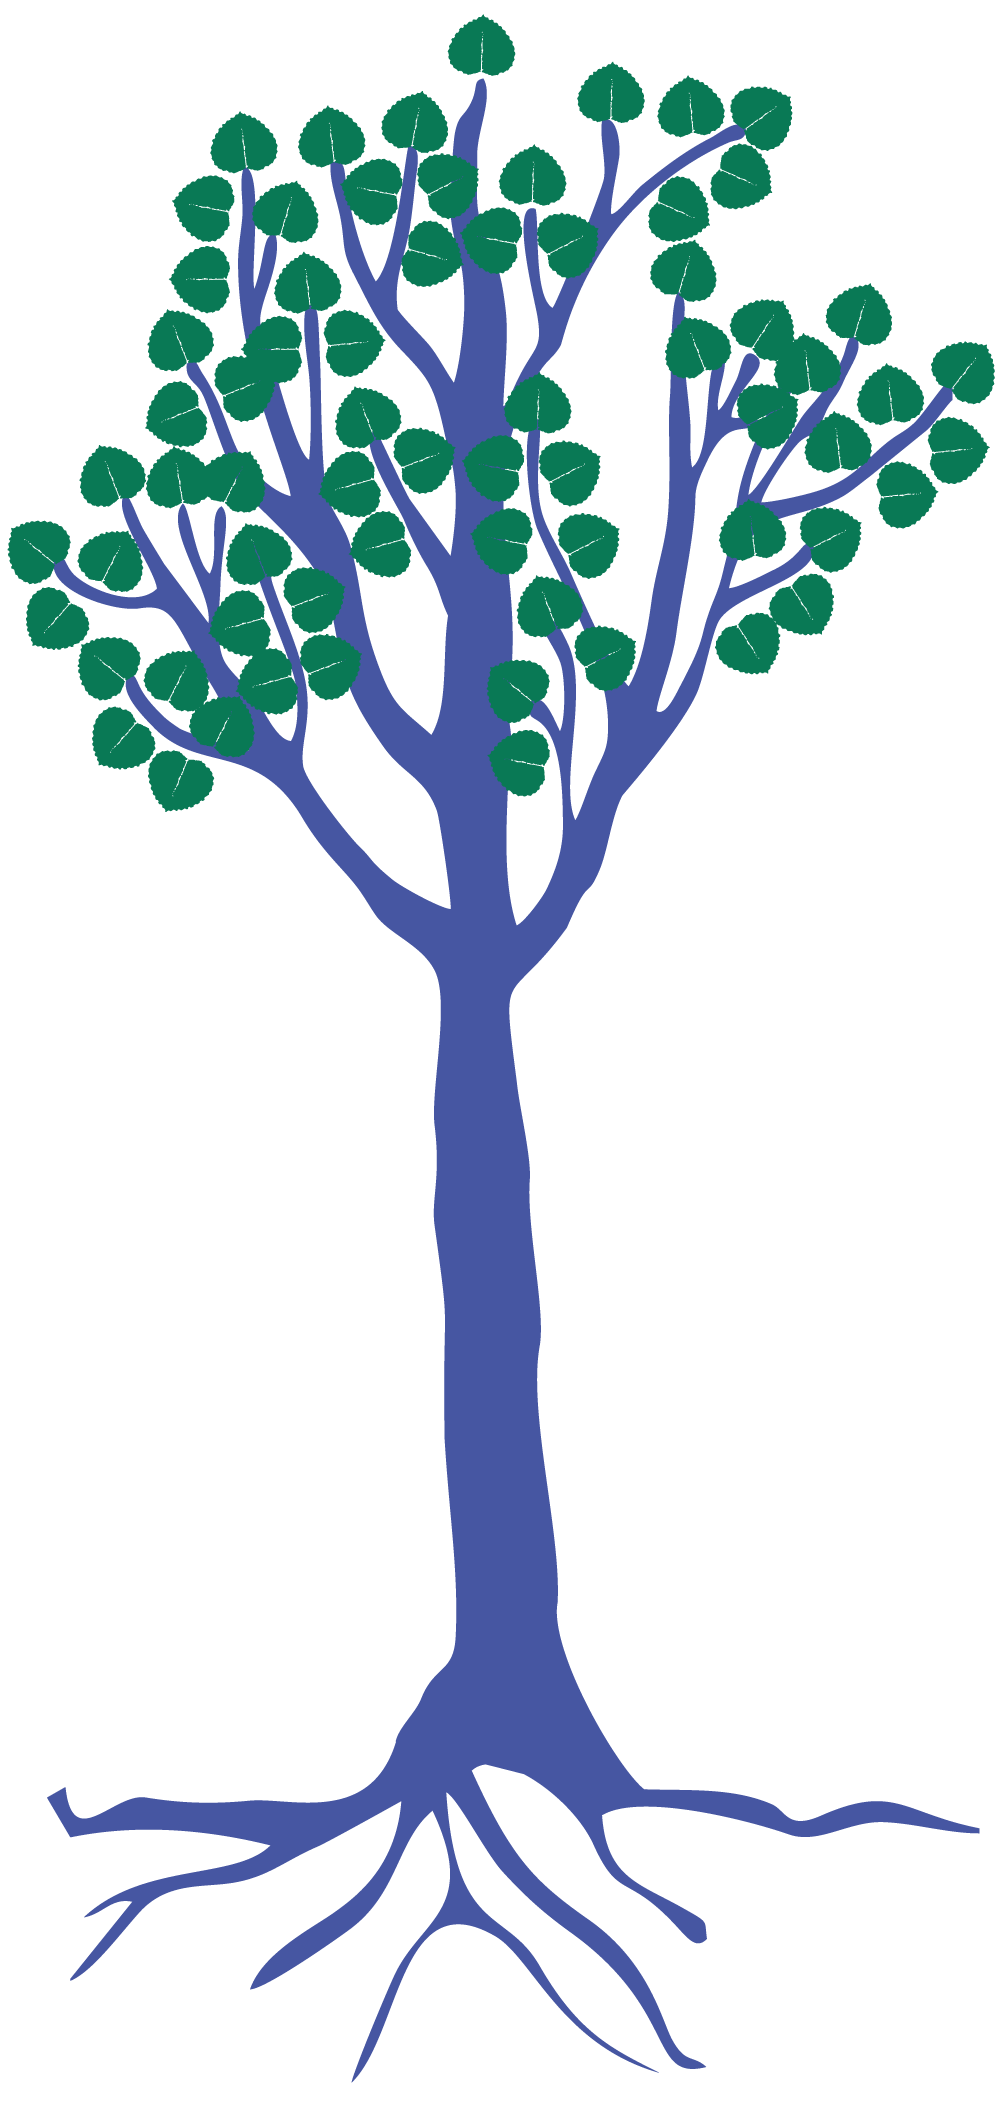 Tree_alone.png